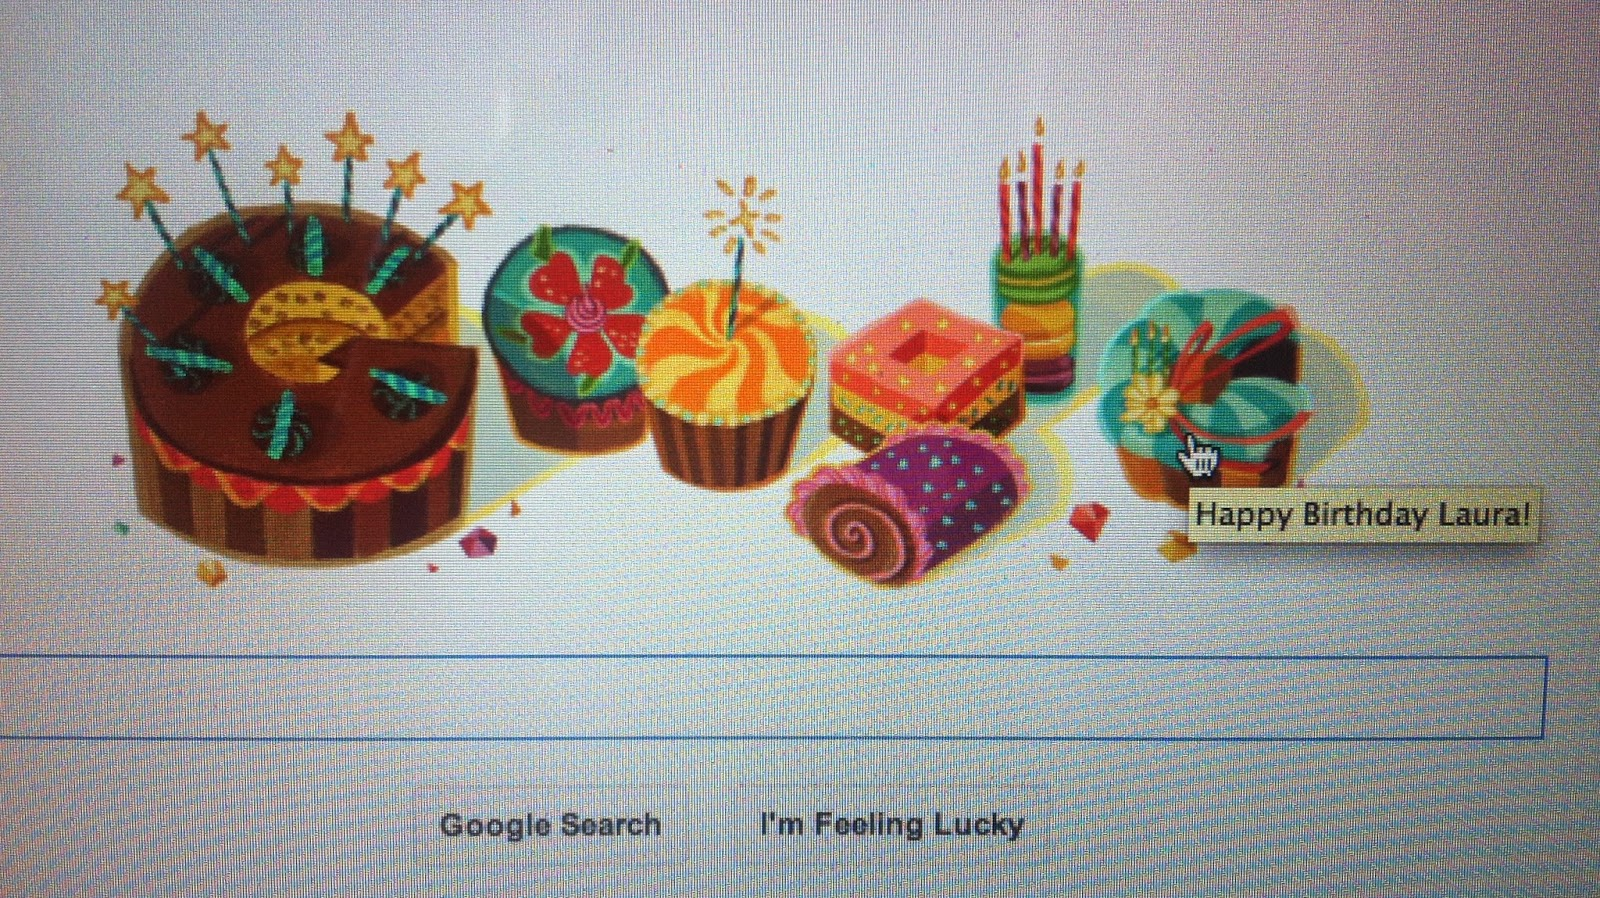 Google said Happy Birthday!